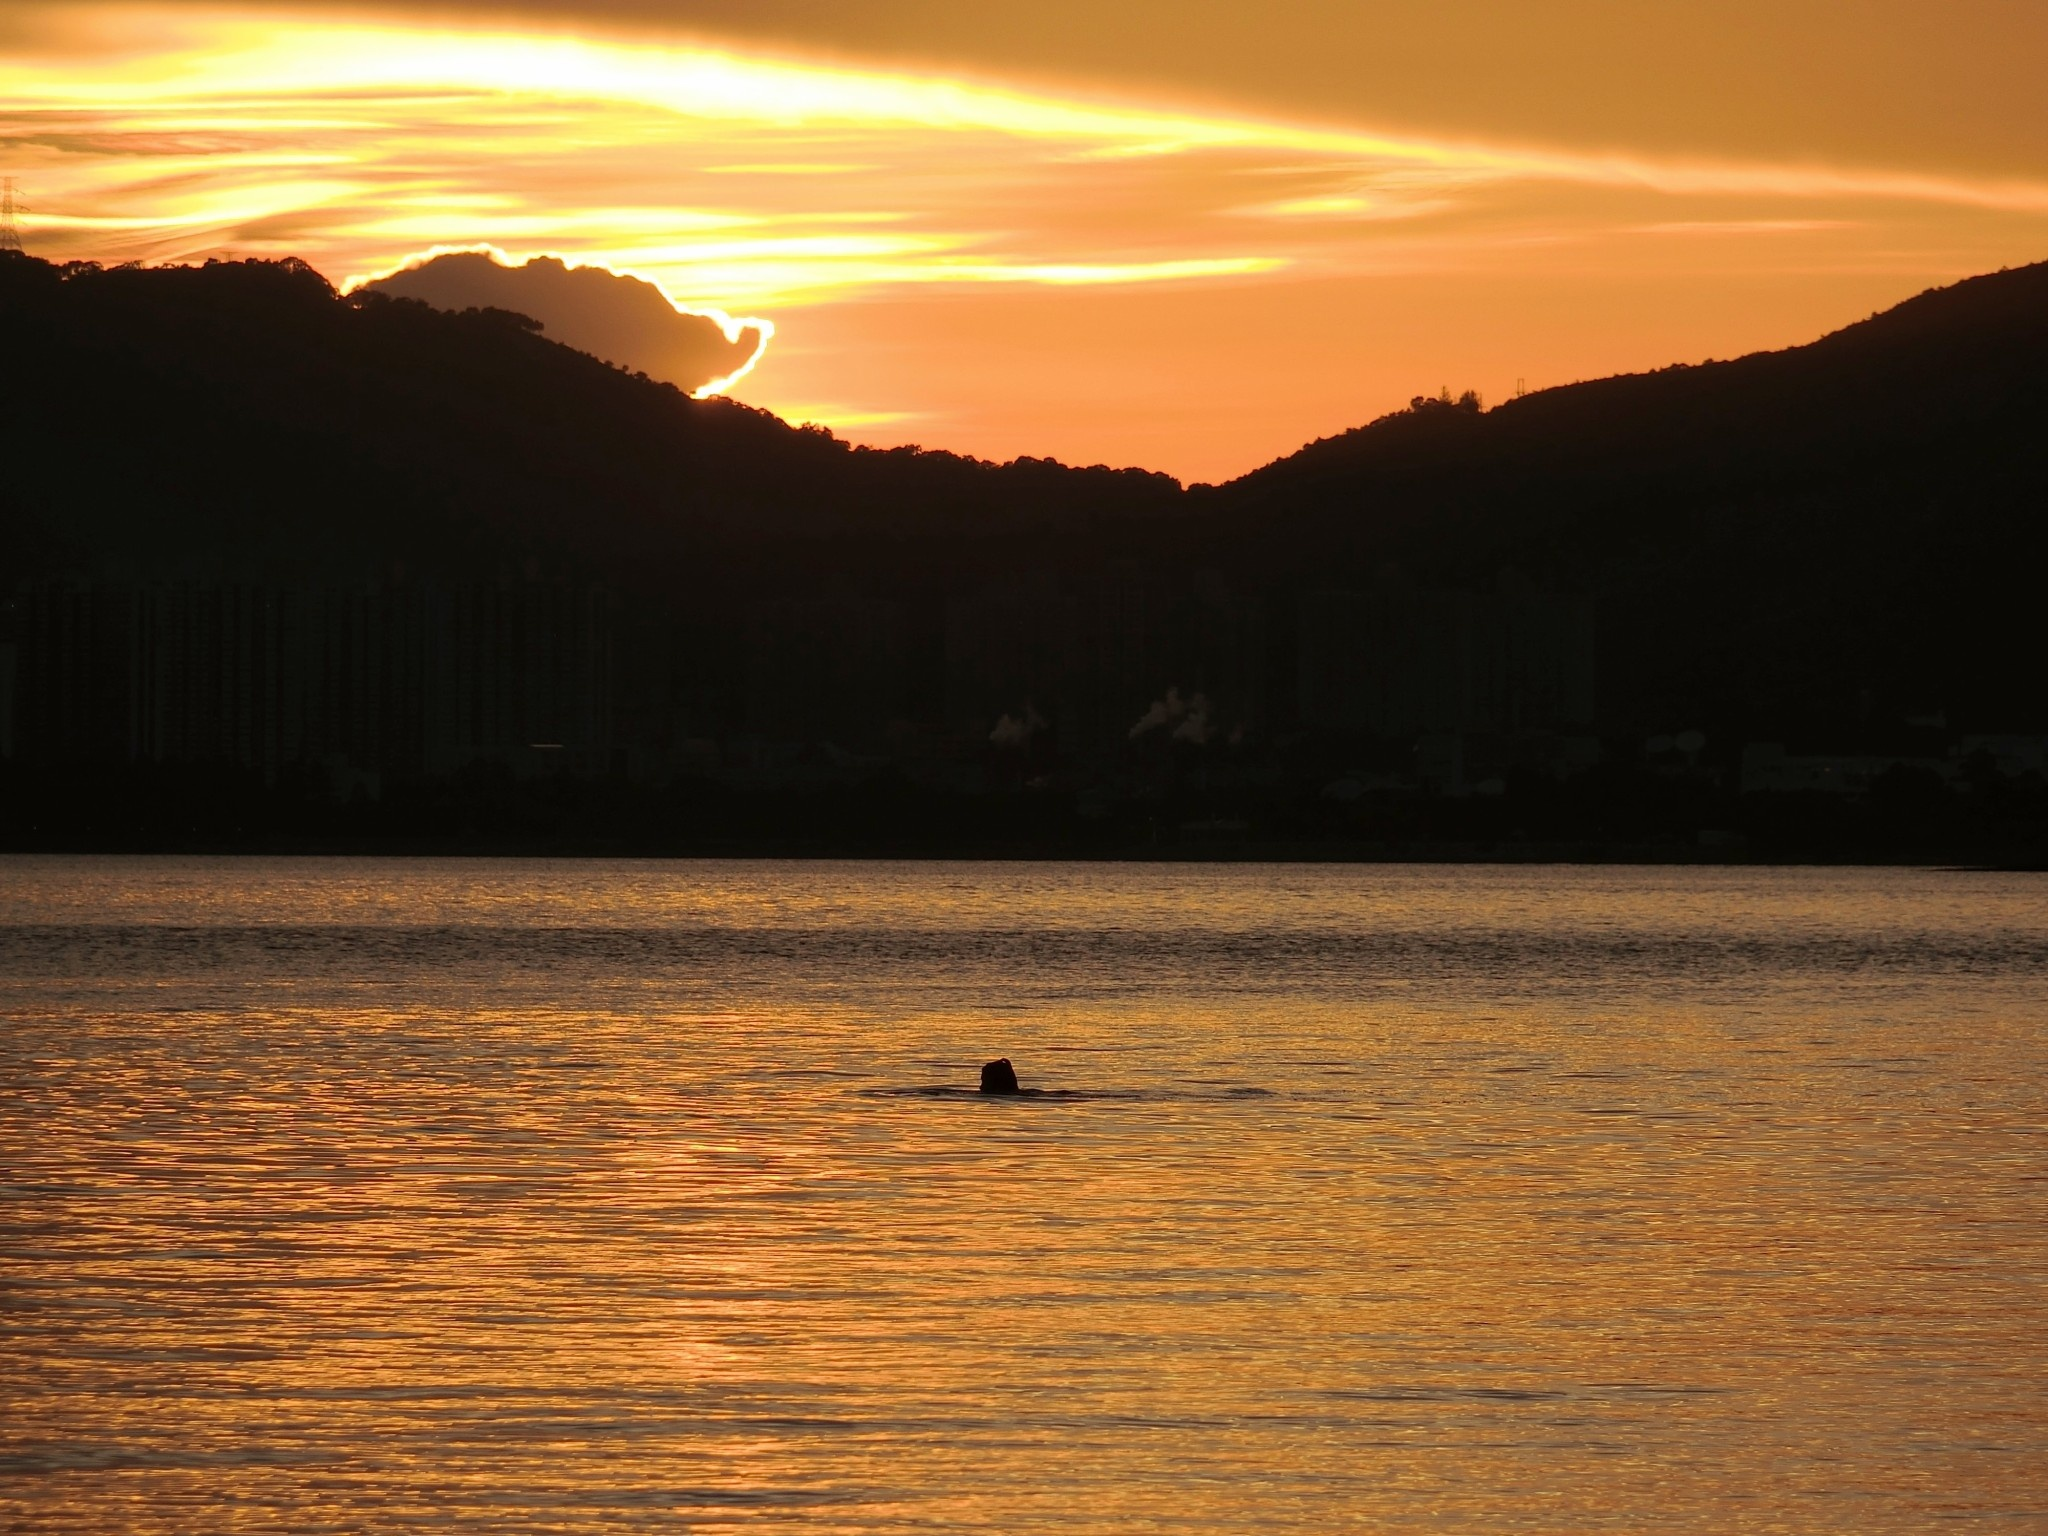 Lone swimmer at sunset by pop88123